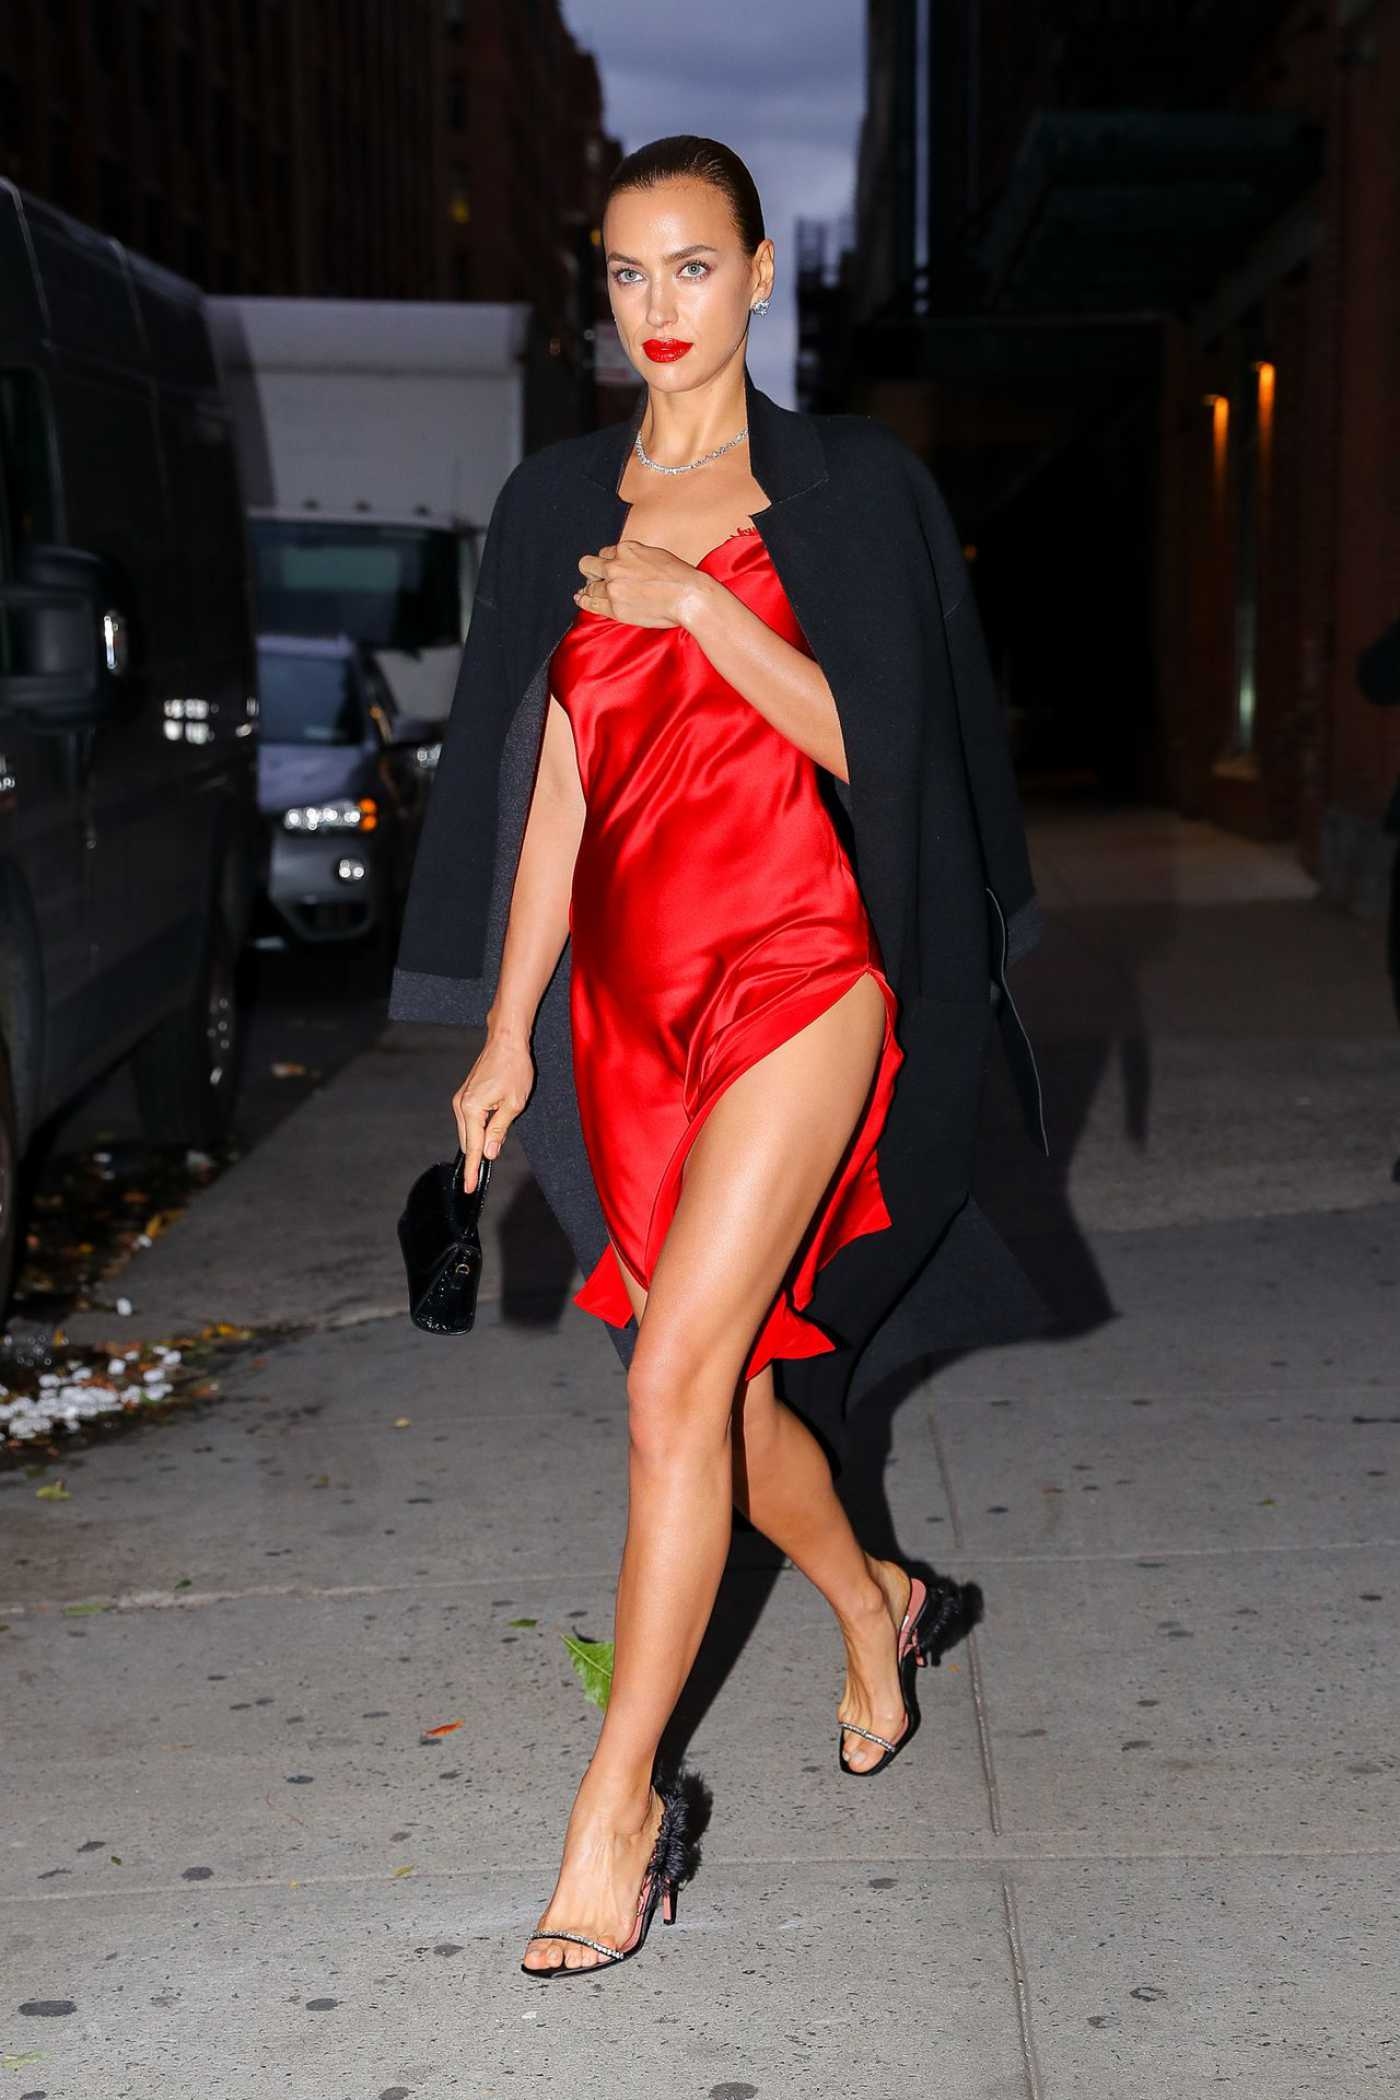 Irina Shayk in a Red Dress Was Seen Out in New York City 10/17/2019